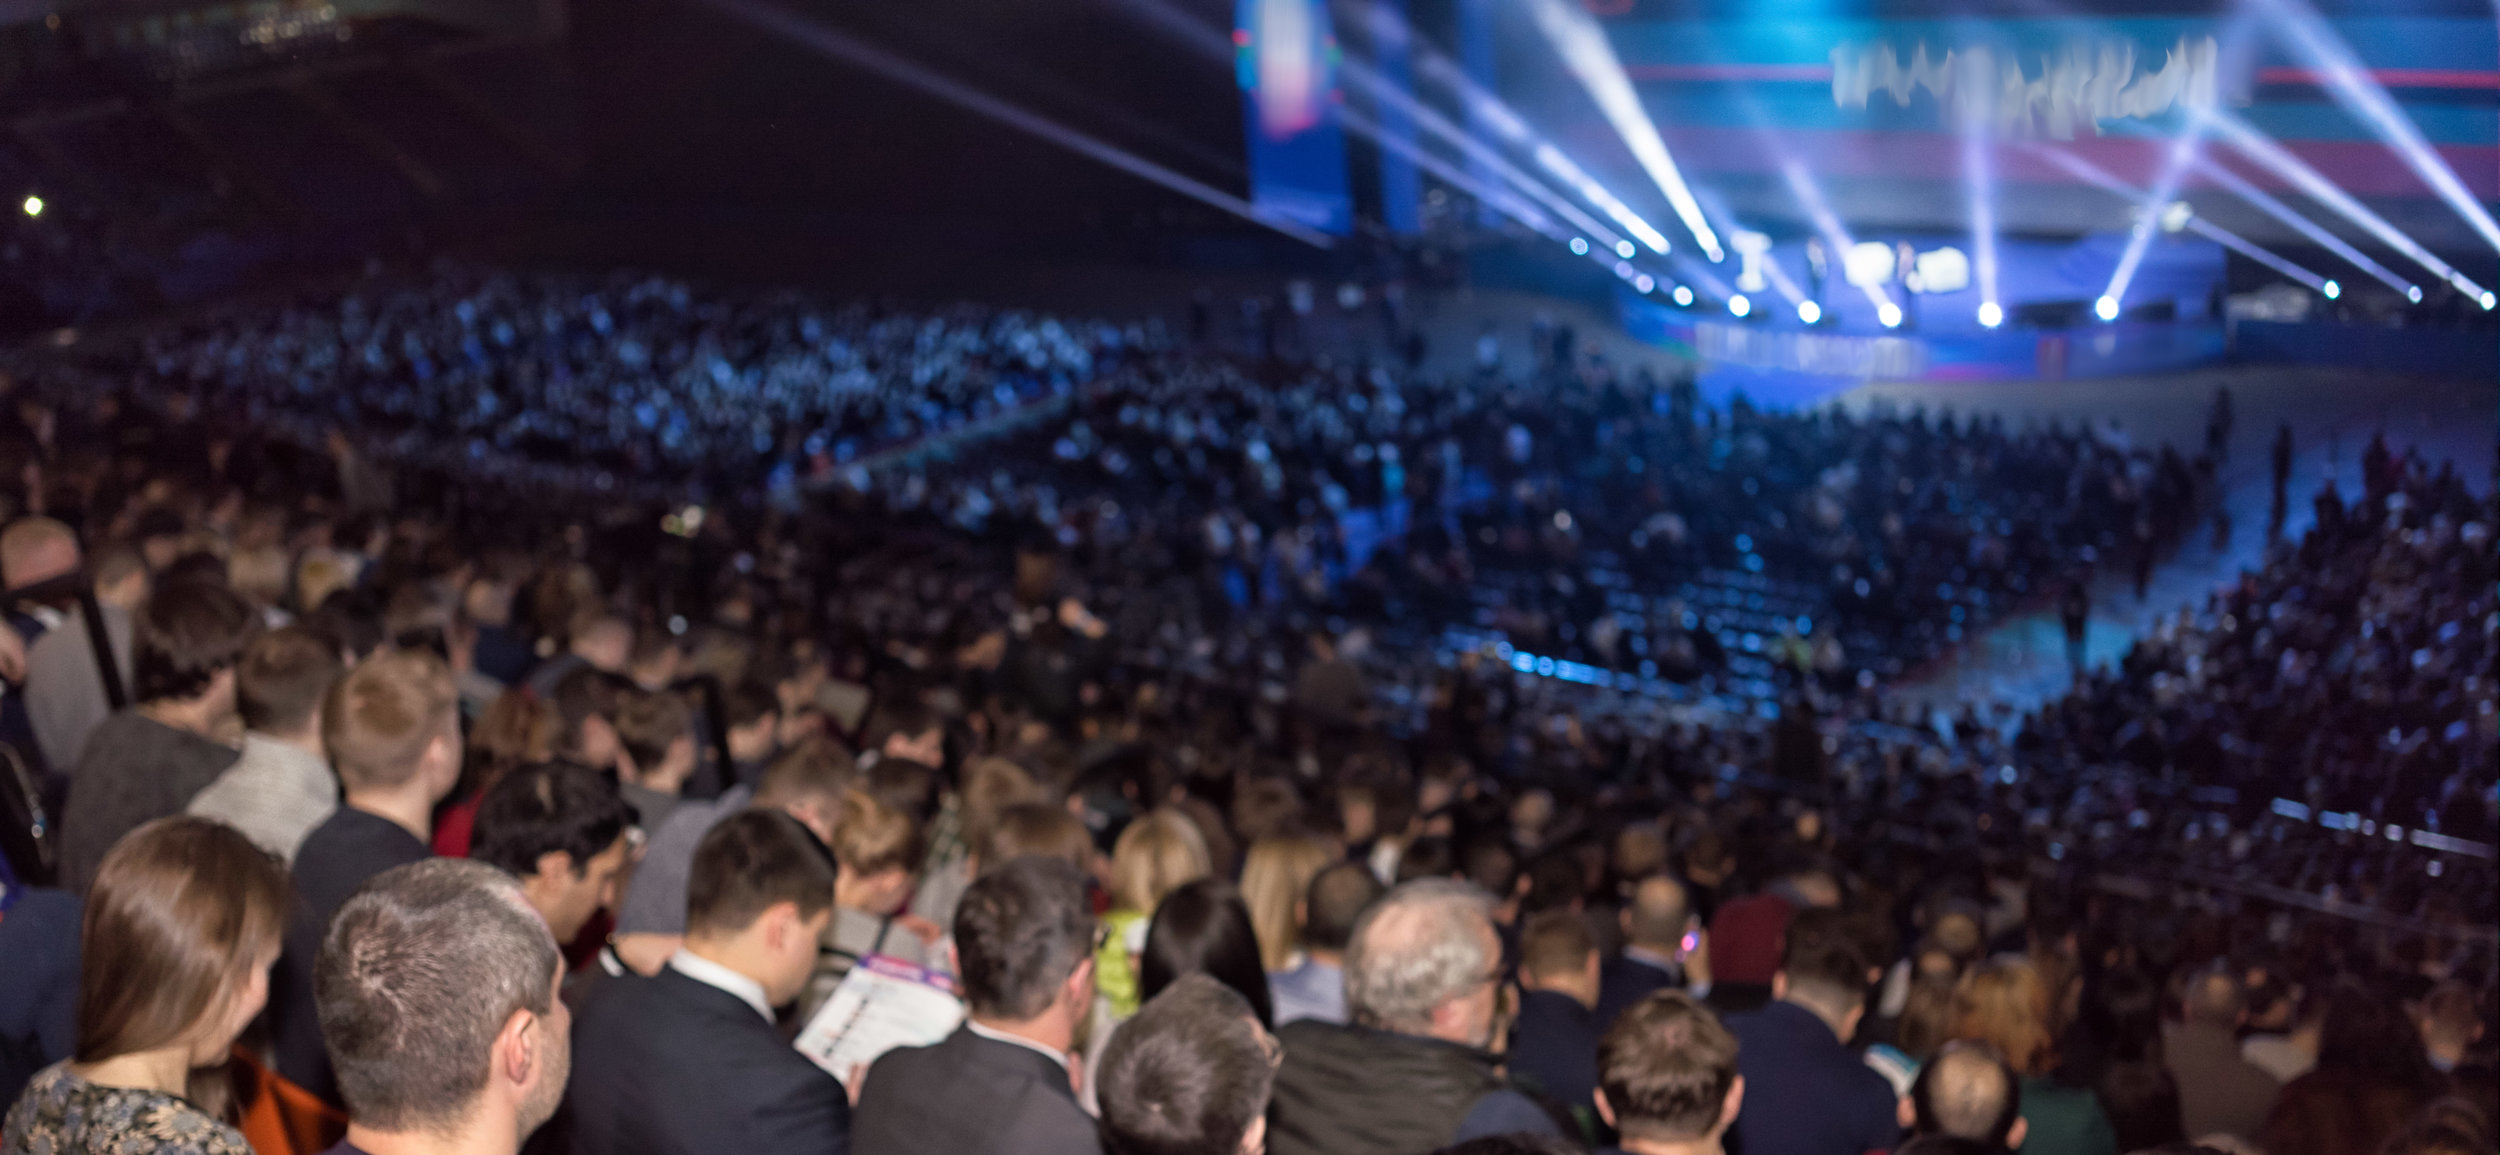 Copy of rear view of the audience at the business conference